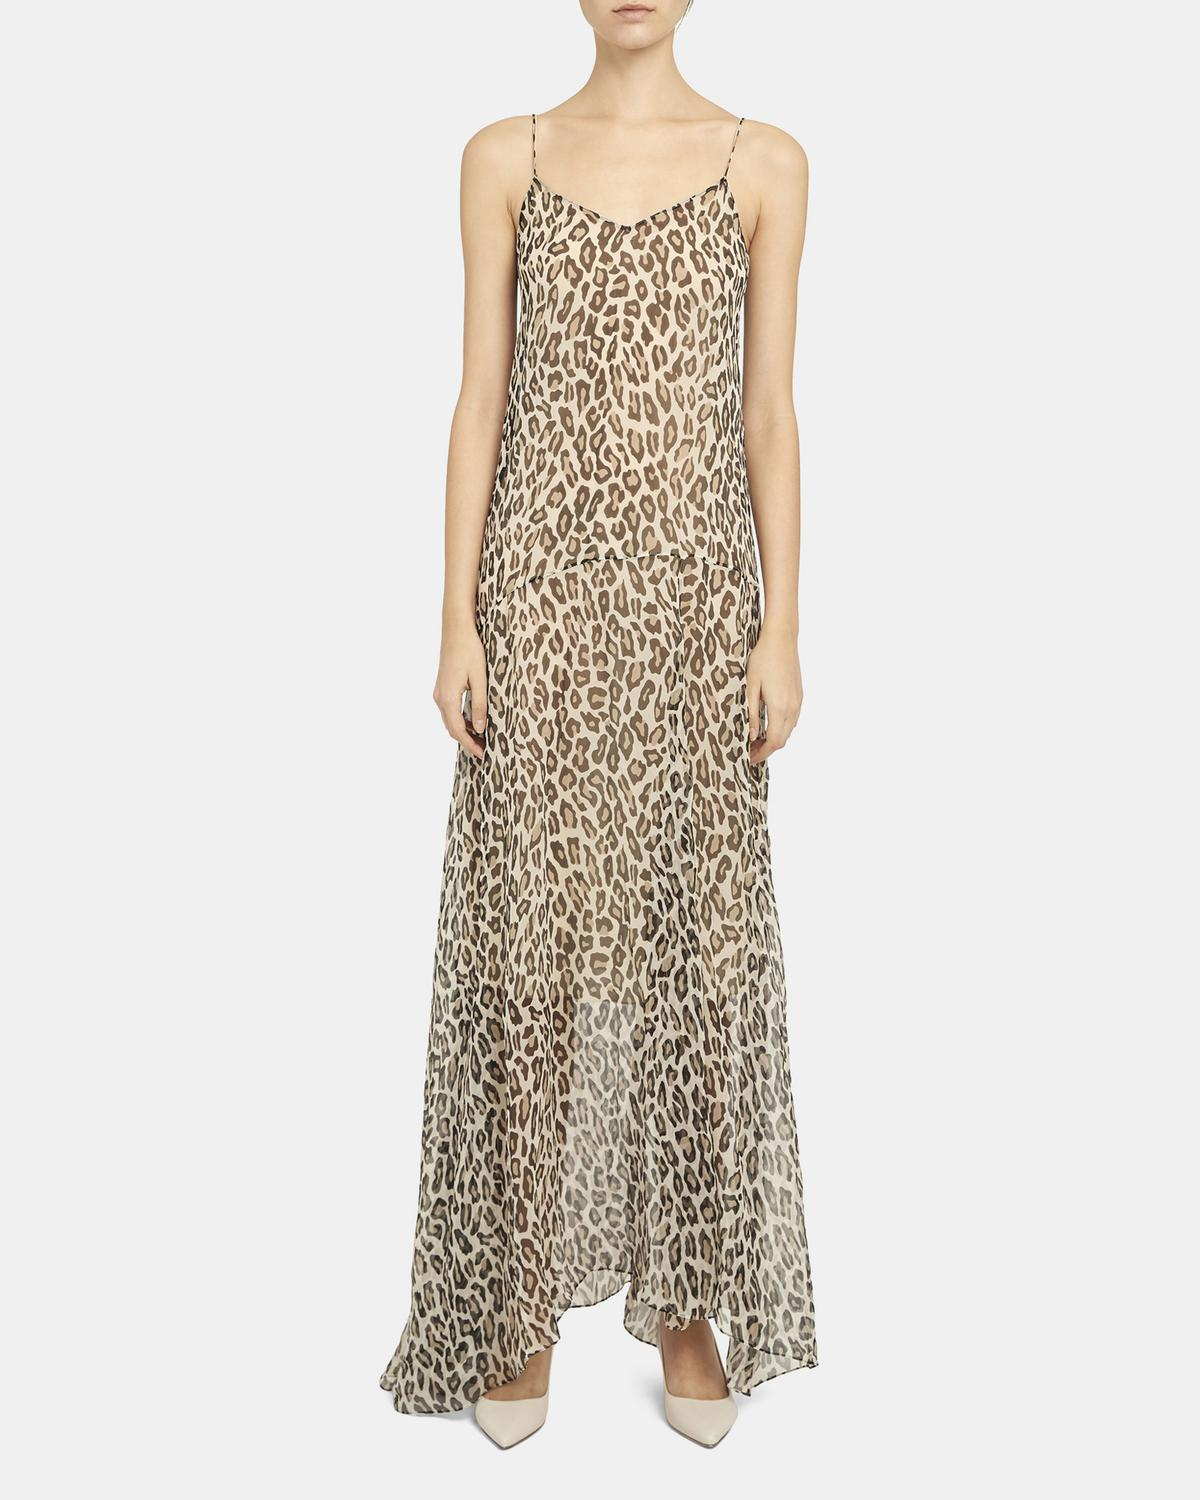 Asymmetric Cami Dress in Leopard Silk Chiffon